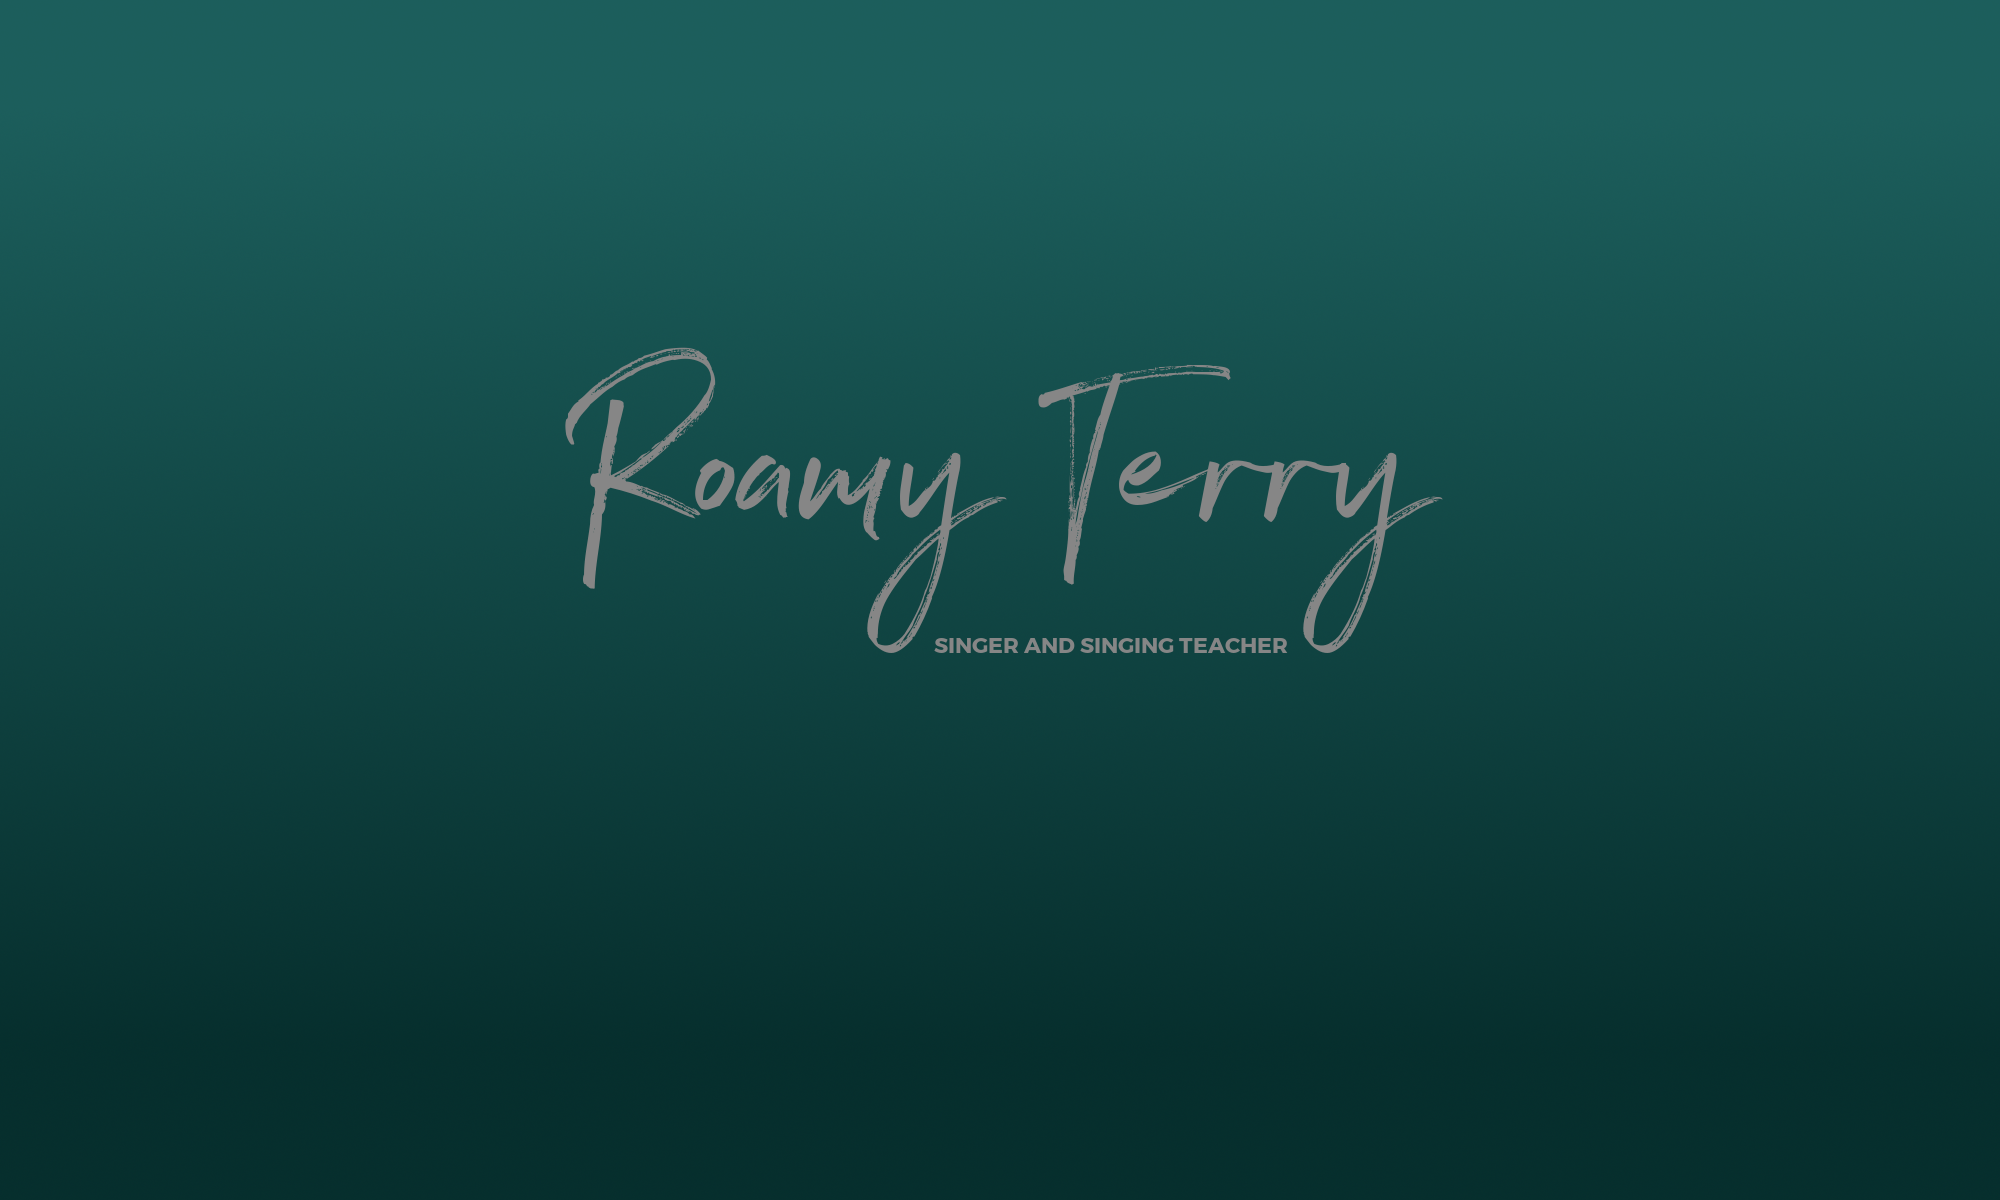 Roamy Terry - Singer and Singing Teacher